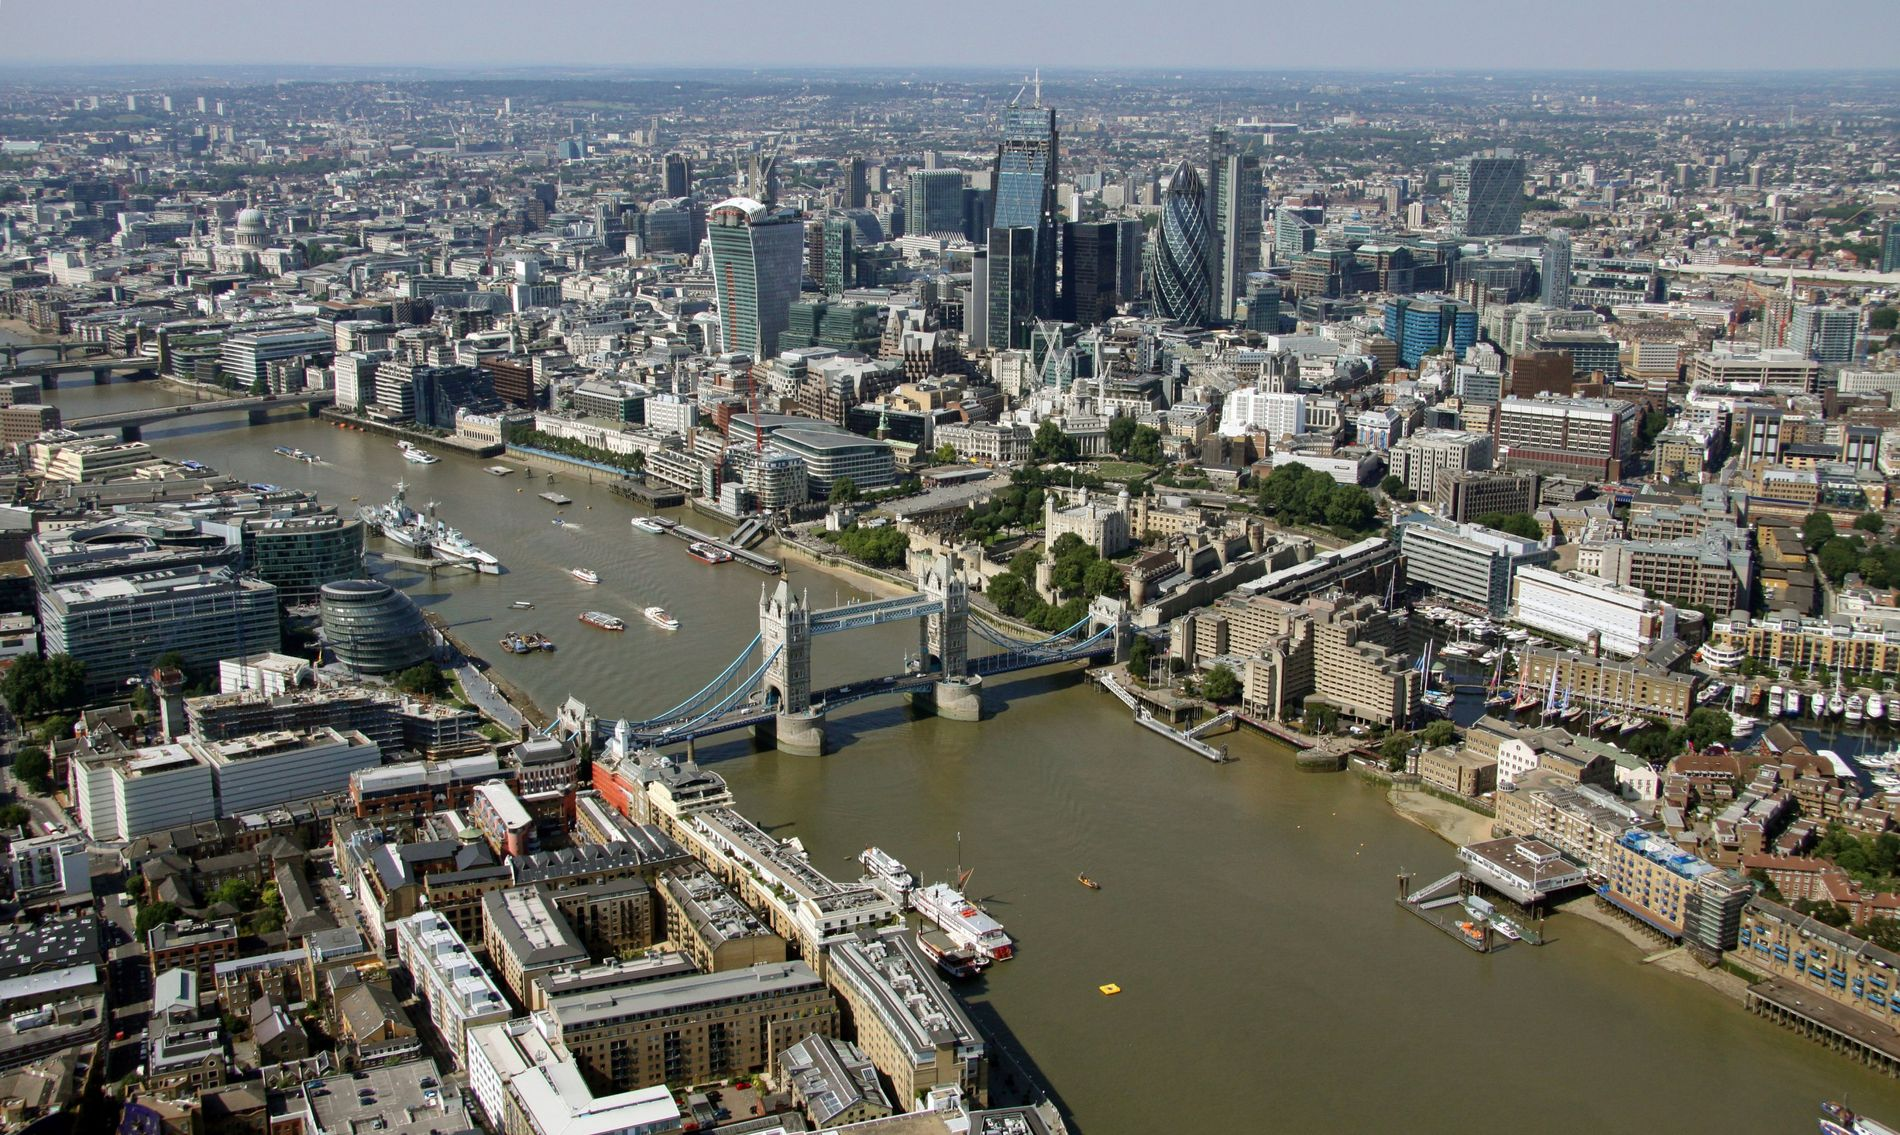 London's Thames was one of the rivers in the UK-commissioned study, which warns 'that by 2050, ...